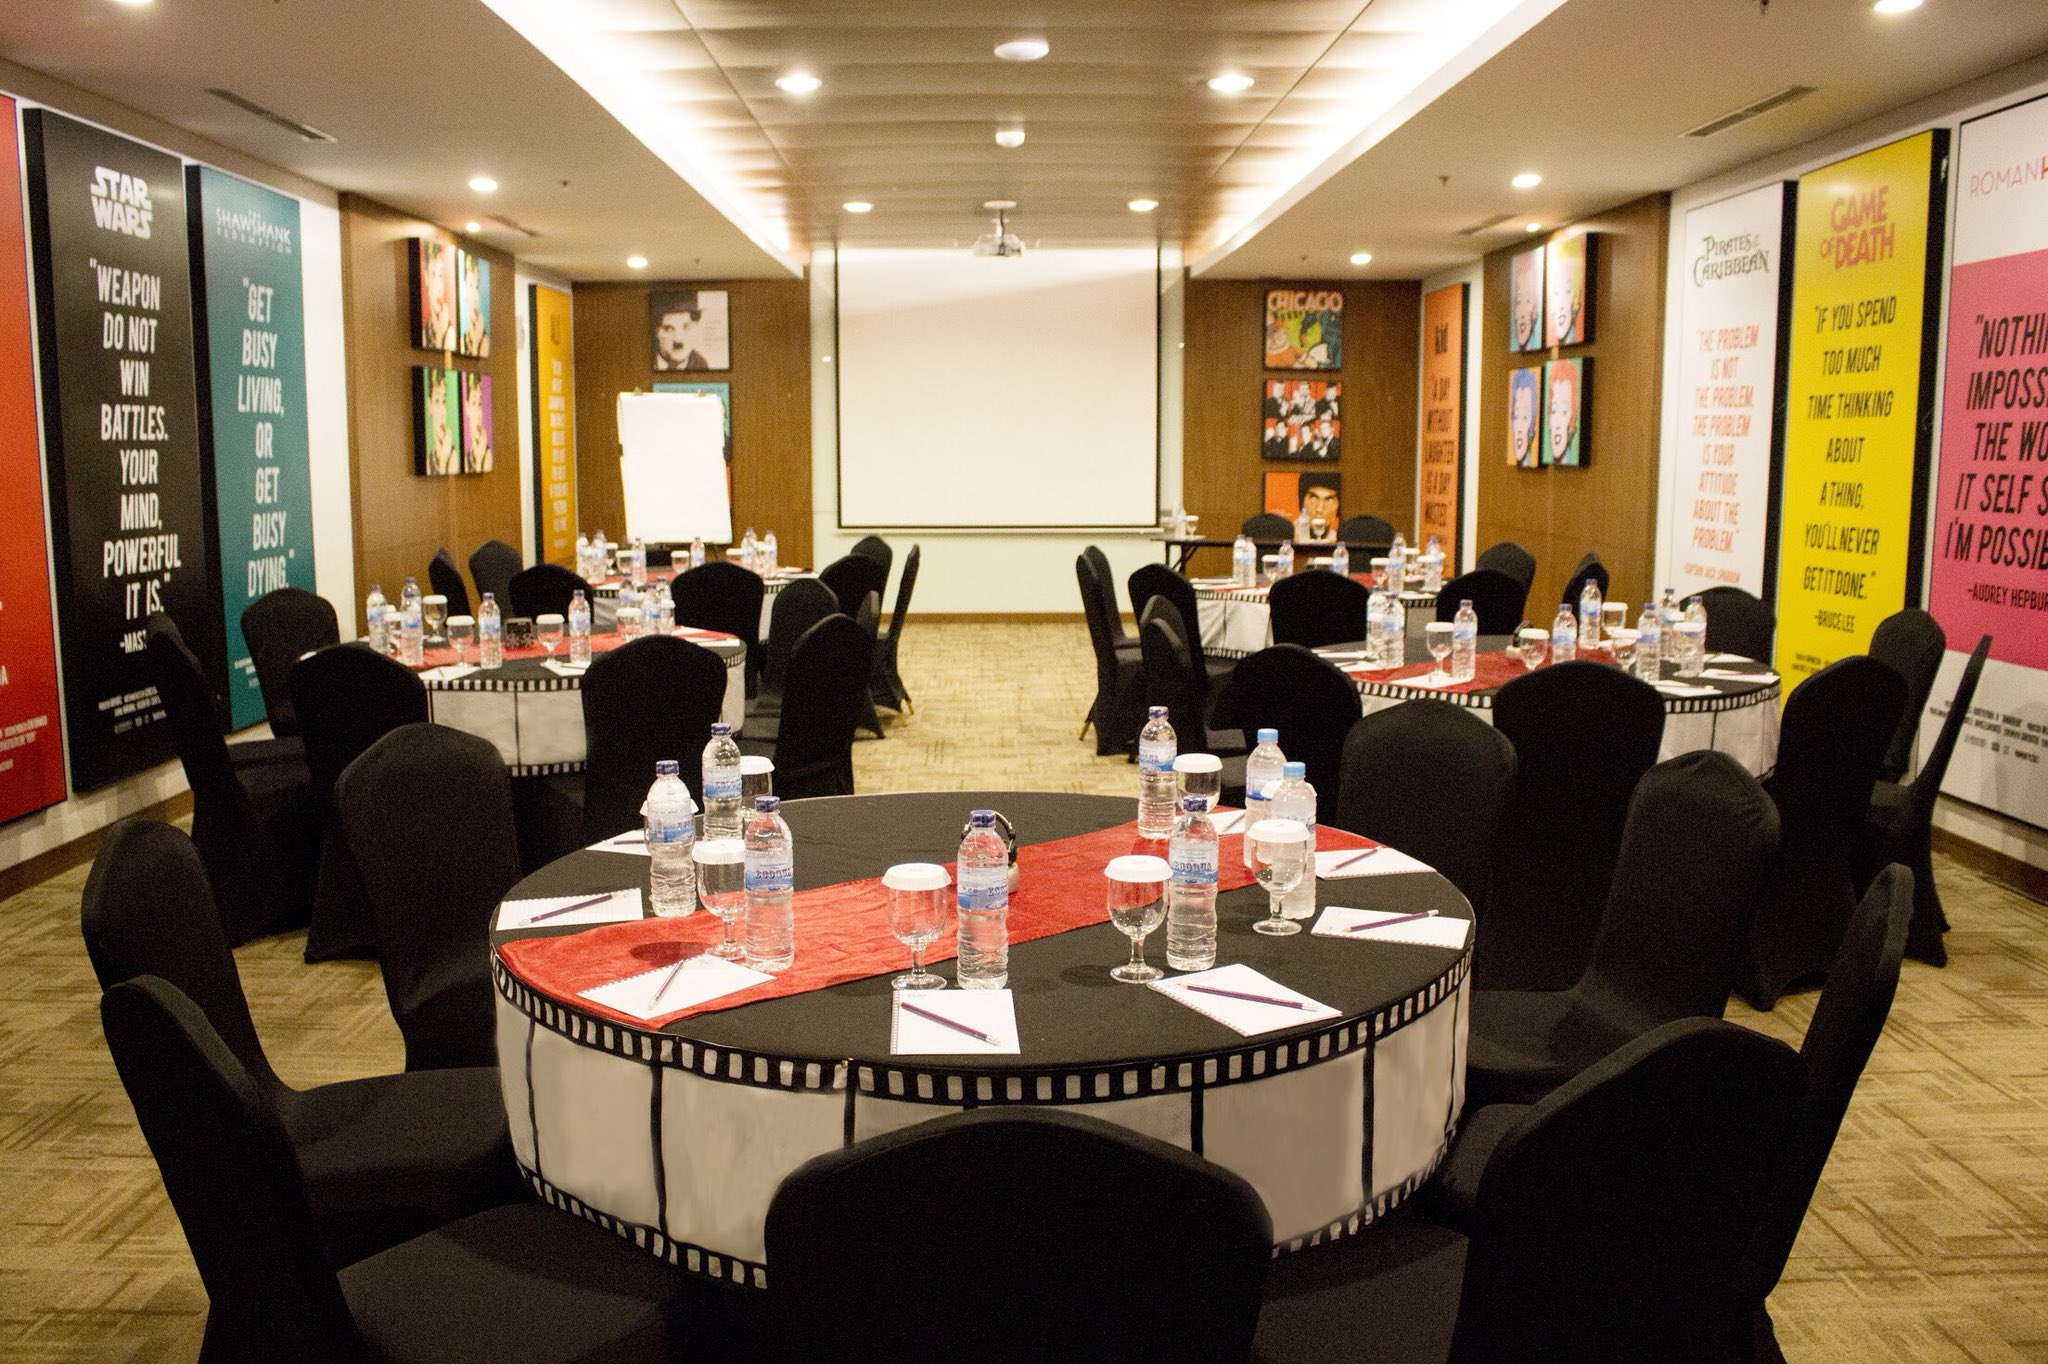 Fame Hotel Sunset Road Kuta Bali On Twitter Hello Fame Ous People Are You In Business Trip To Bali And Need Some Meeting Room Or Just Need A Comfortable Meeting Room For